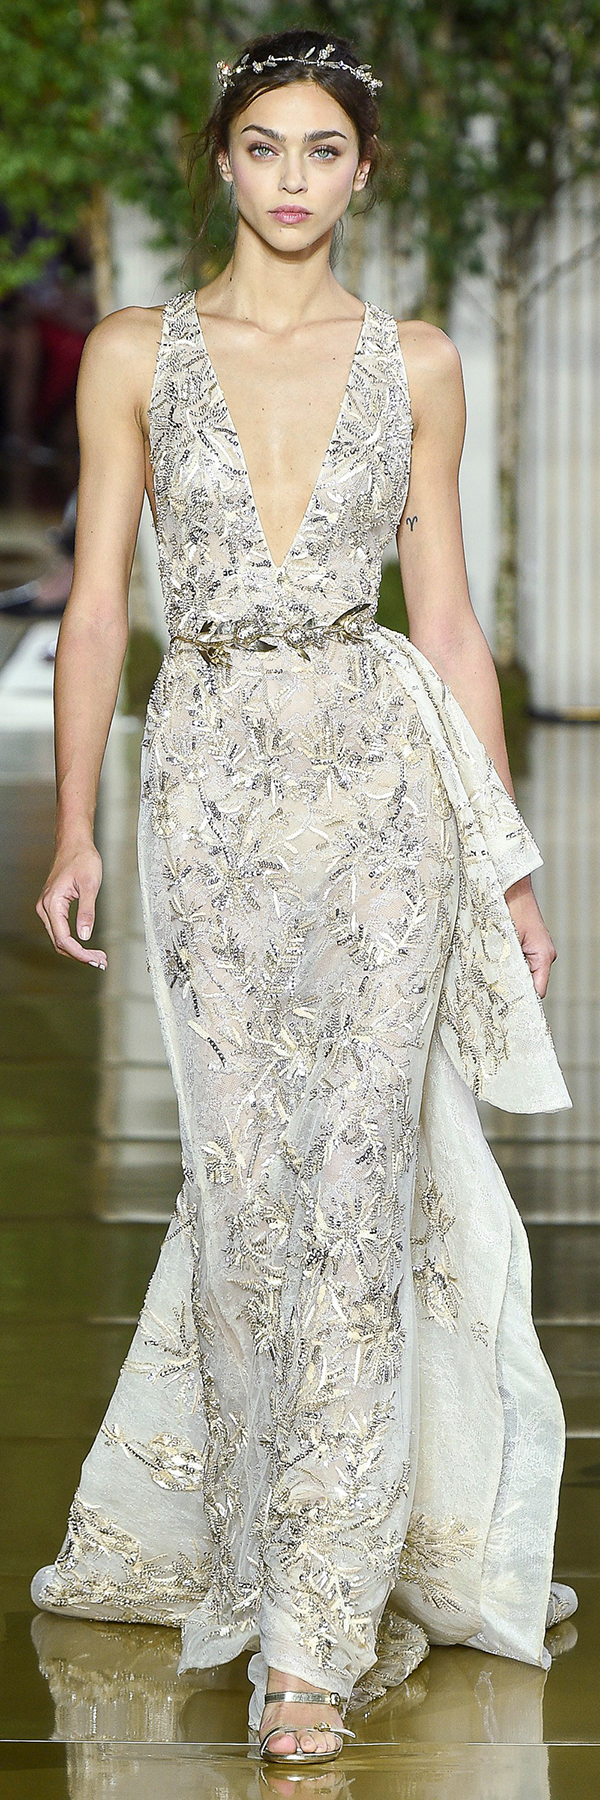 Zuhair murad fall winter haute couture collection couture